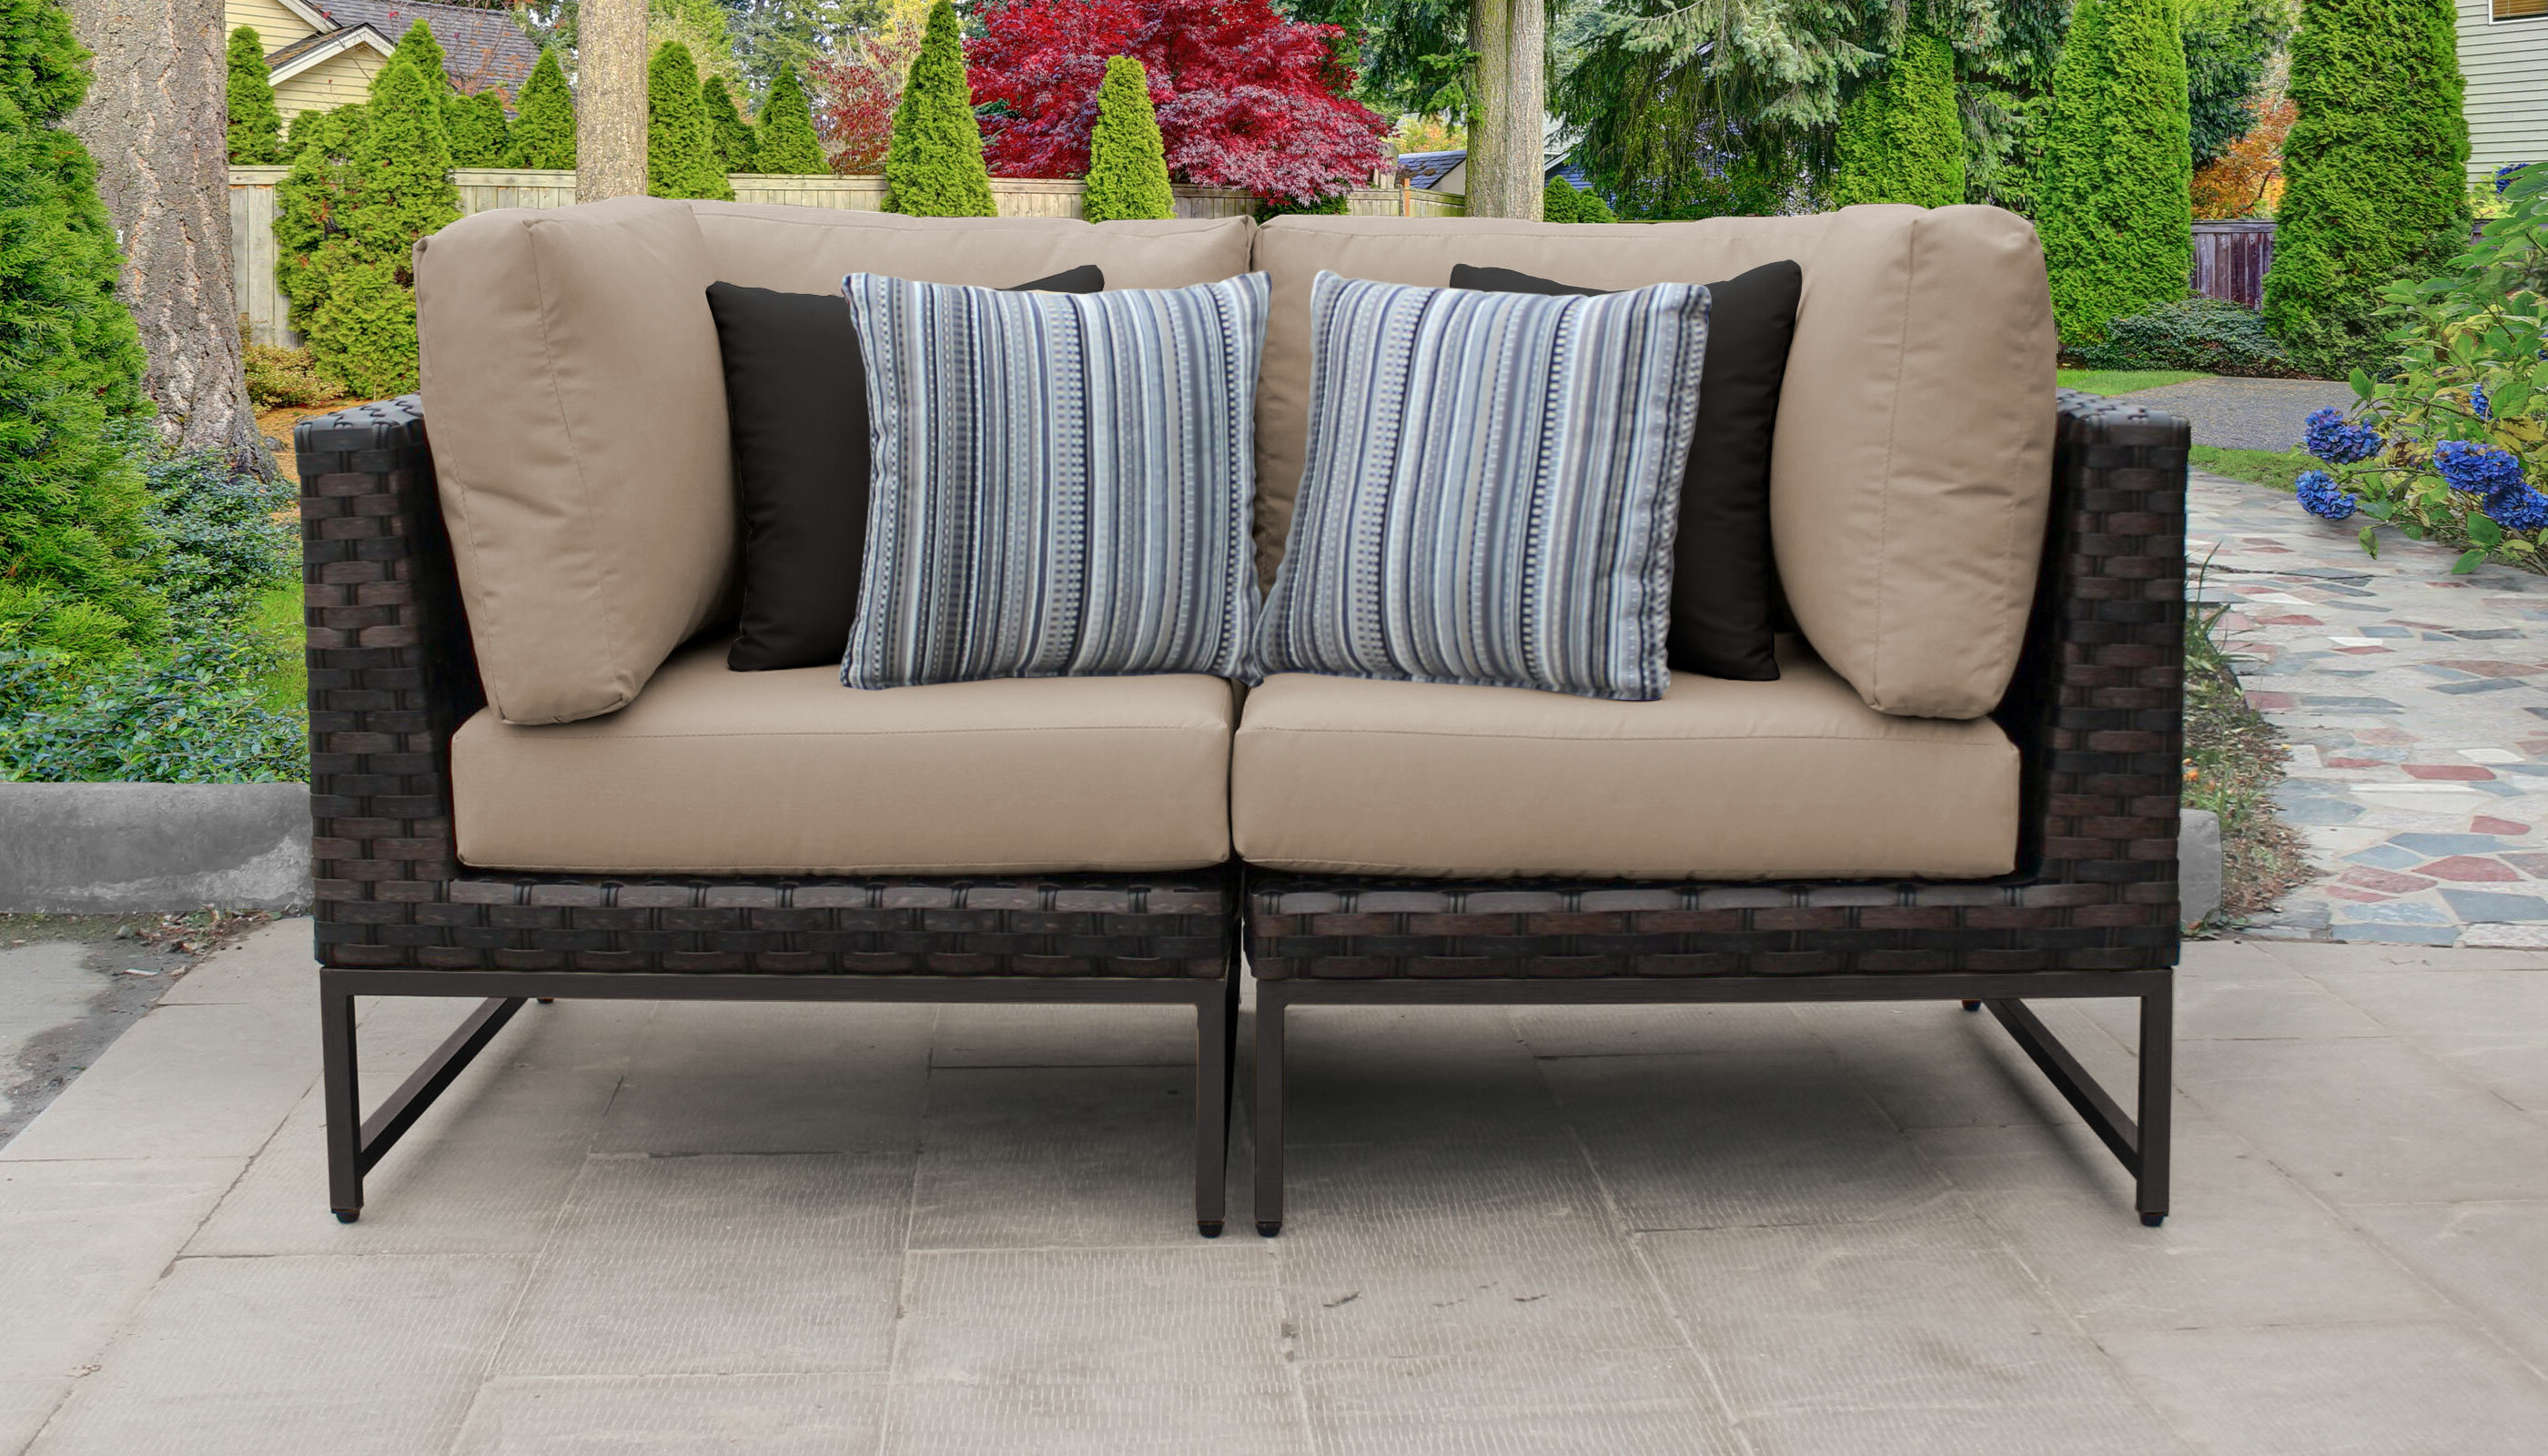 Barcelona Loveseat With Cushions Pertaining To Well Known Pantano Loveseats With Cushions (View 2 of 20)